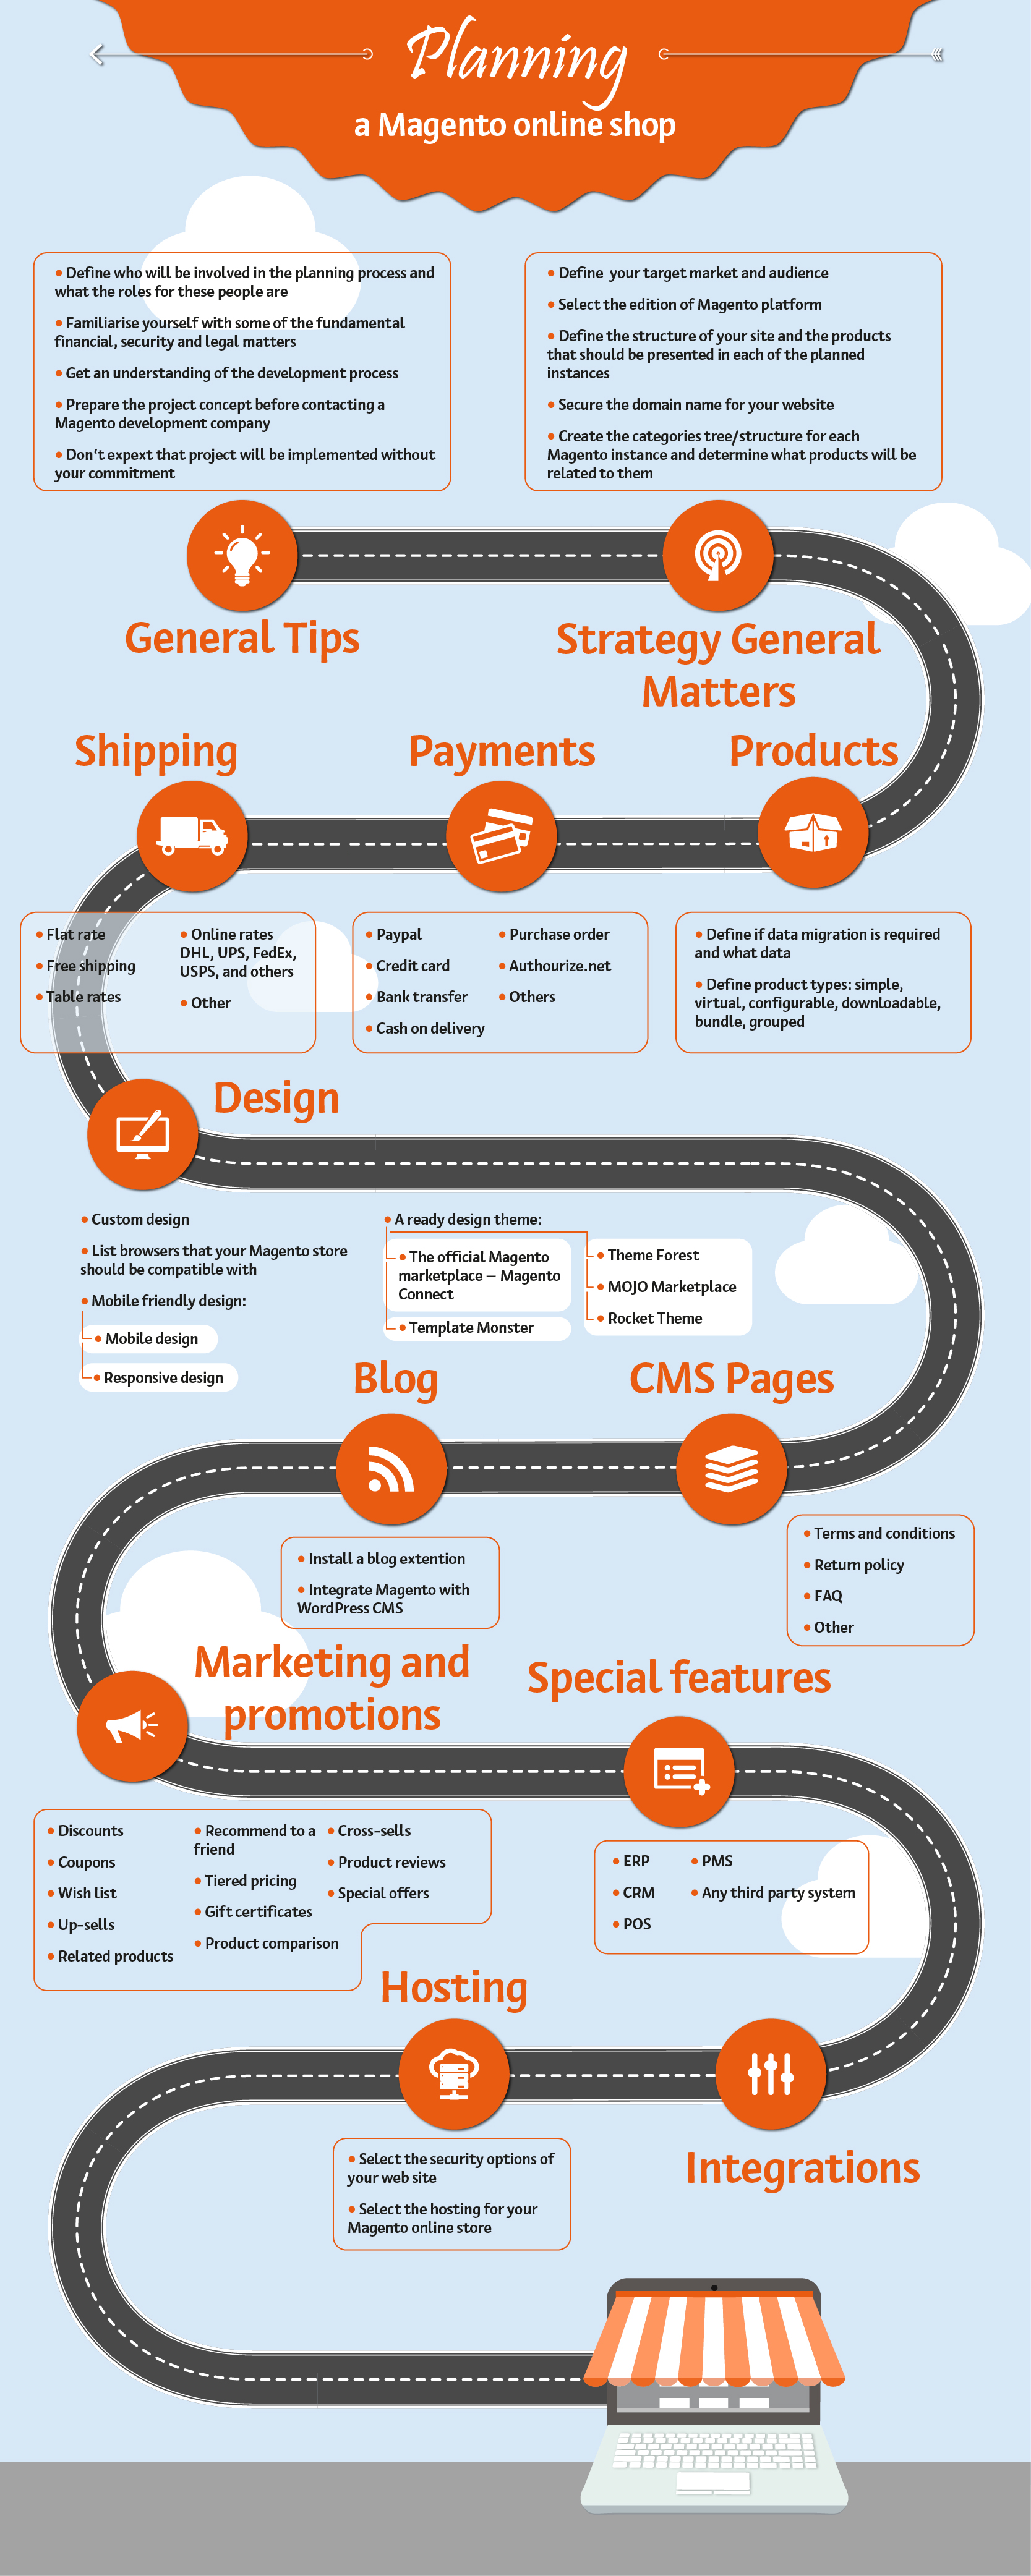 Infographic Magento Online Store Planning